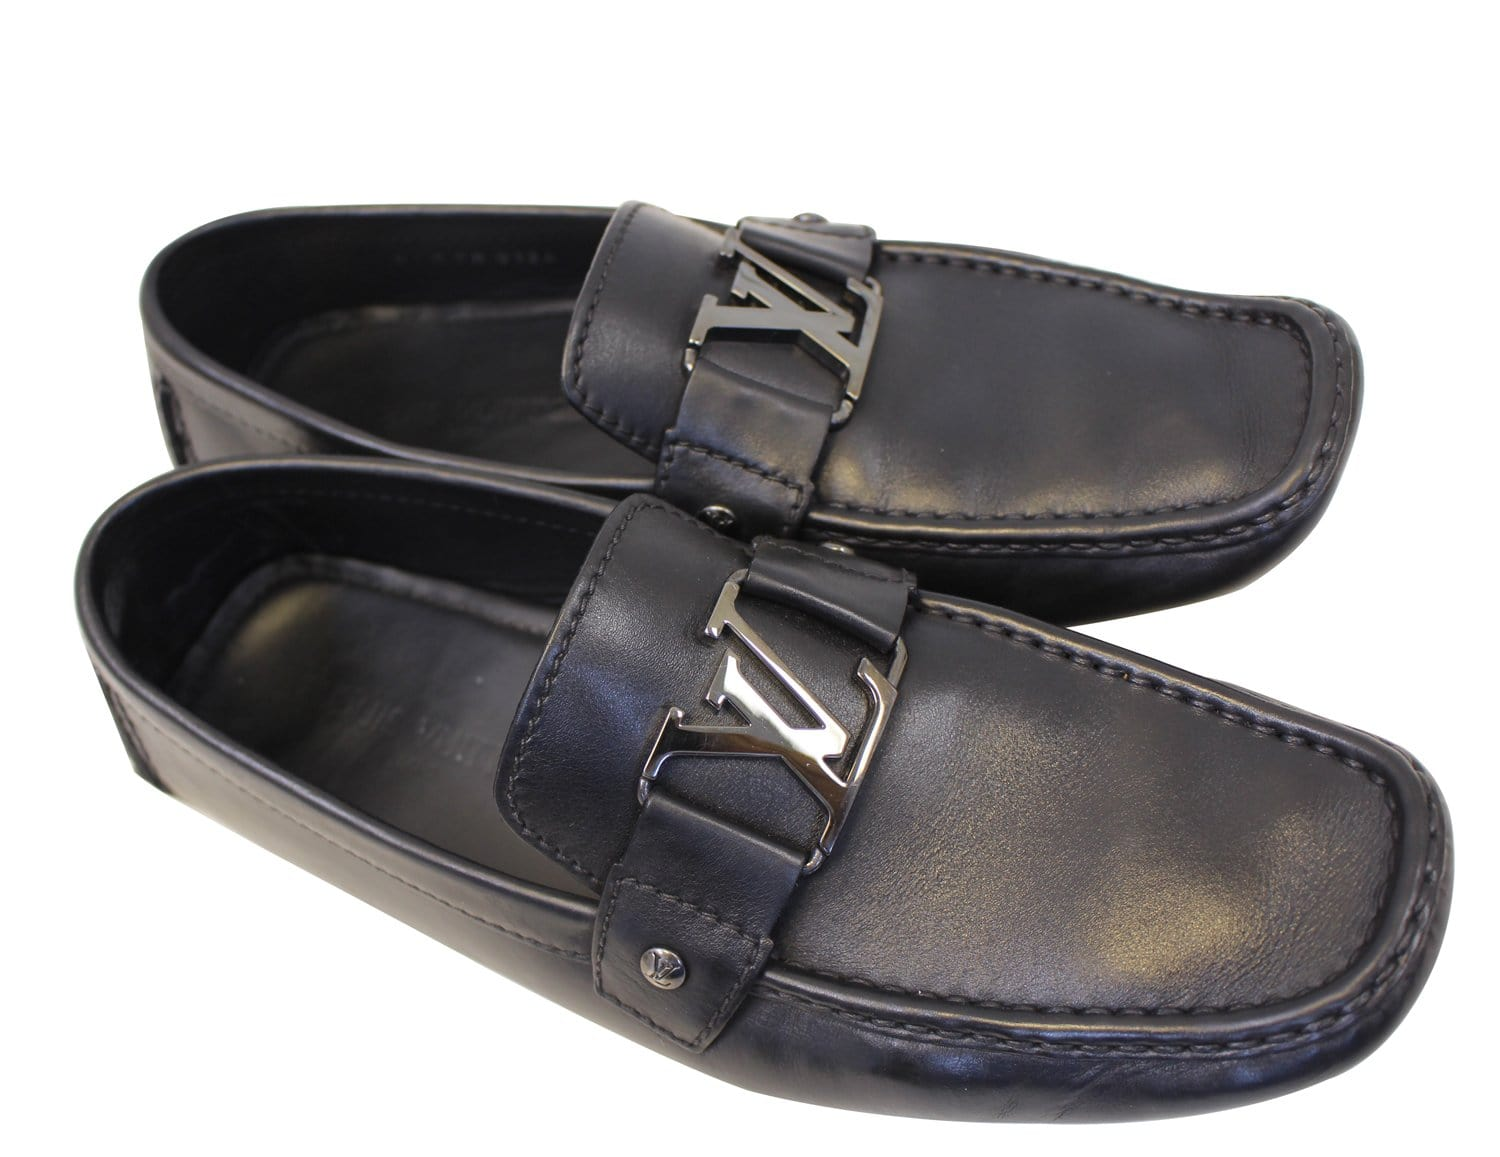 ba782fc79692 LOUIS VUITTON Black Monte Carlo Moccasins Driving Shoes